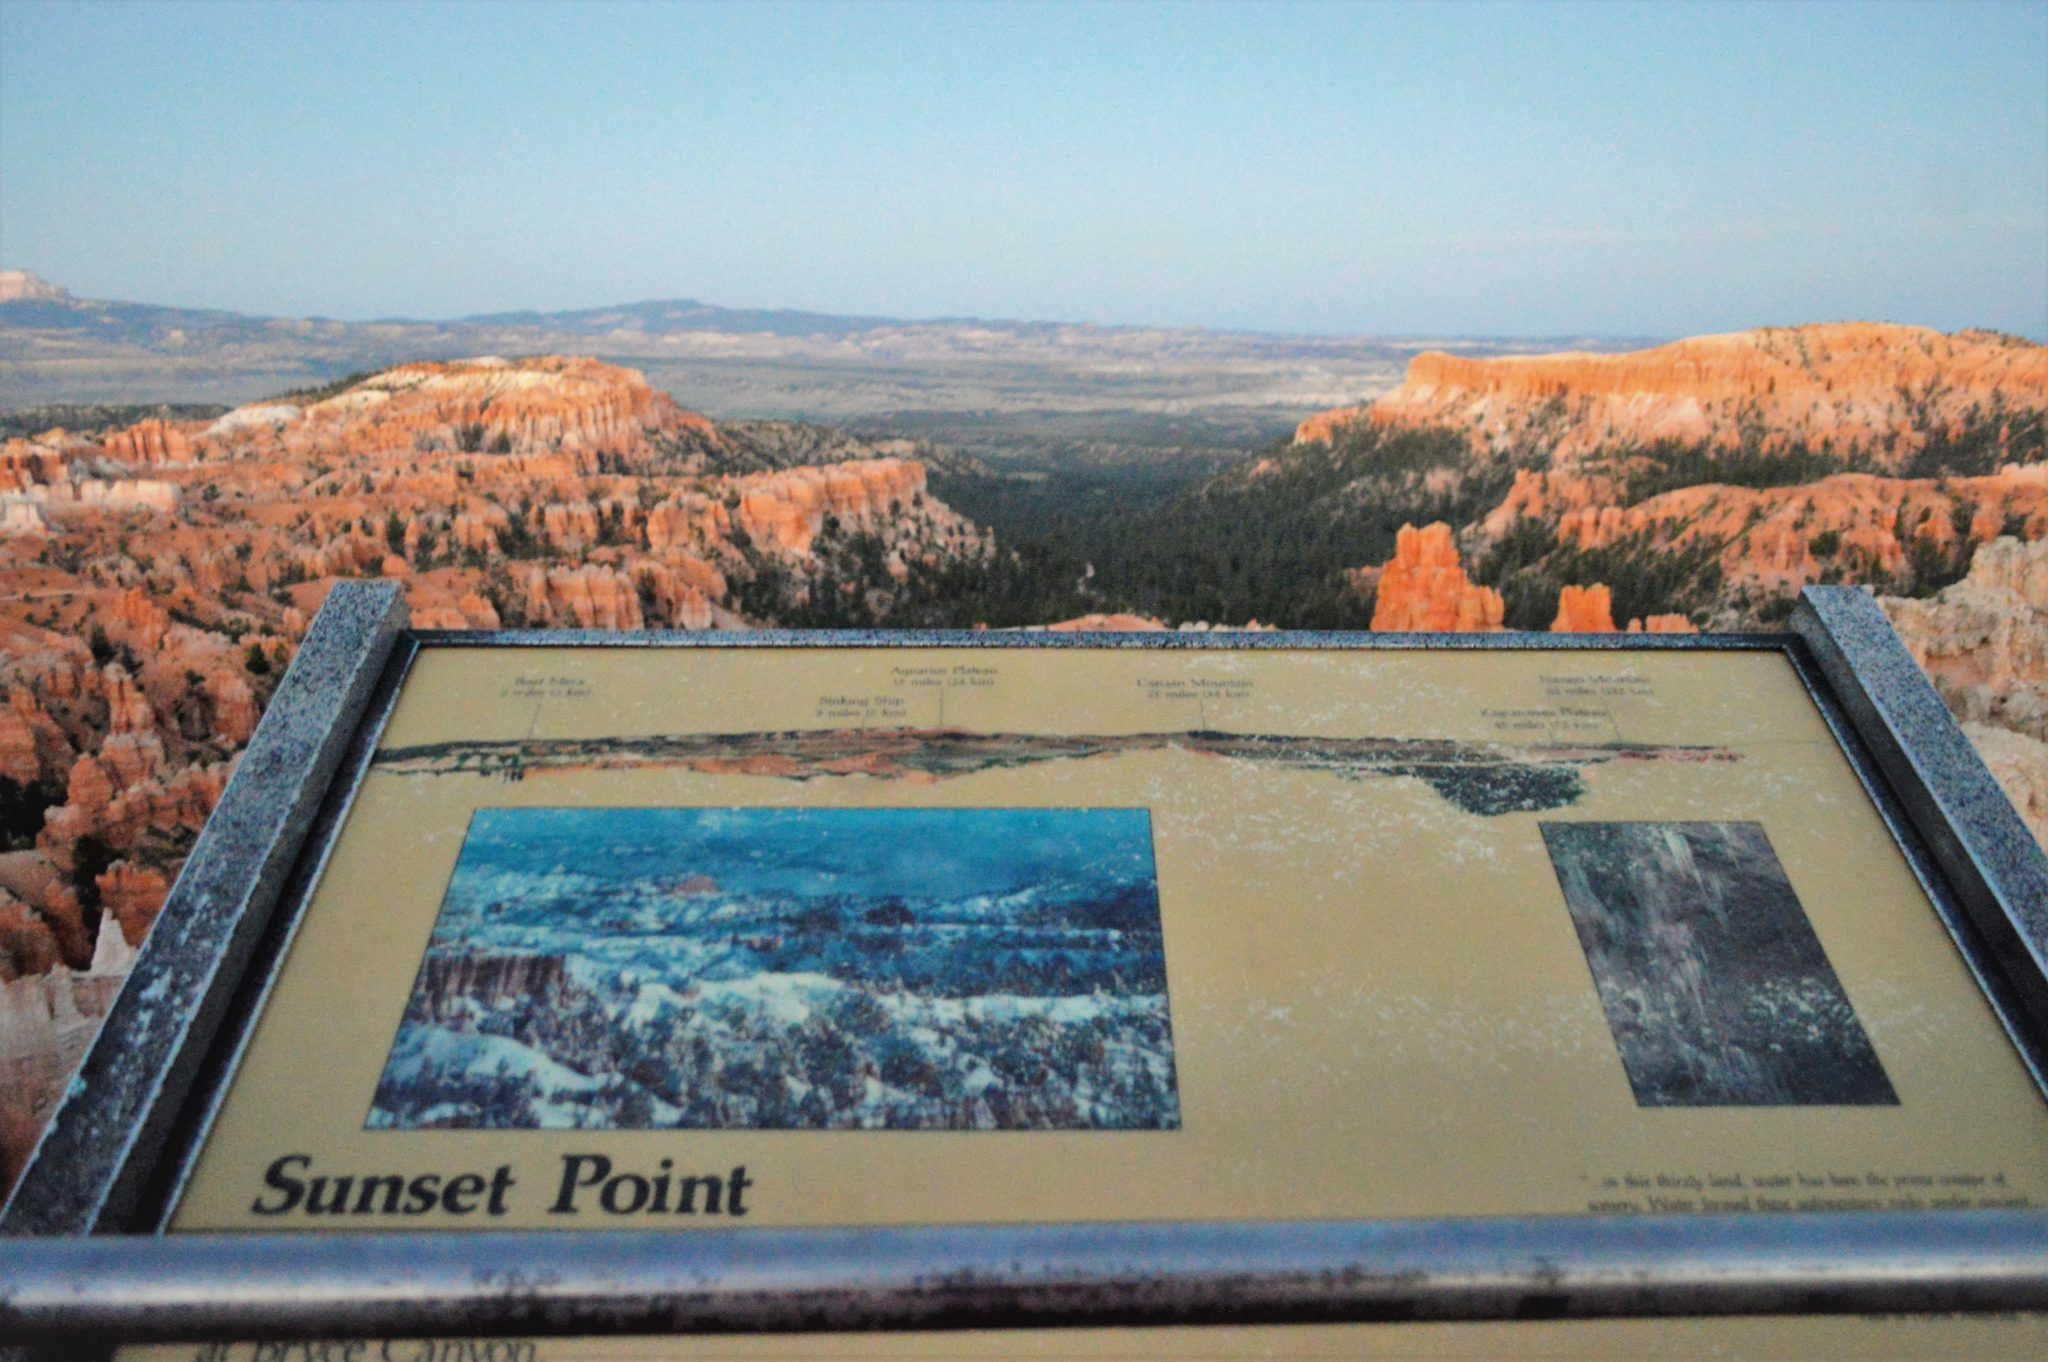 Sunset point in bryce canyon national park, usa